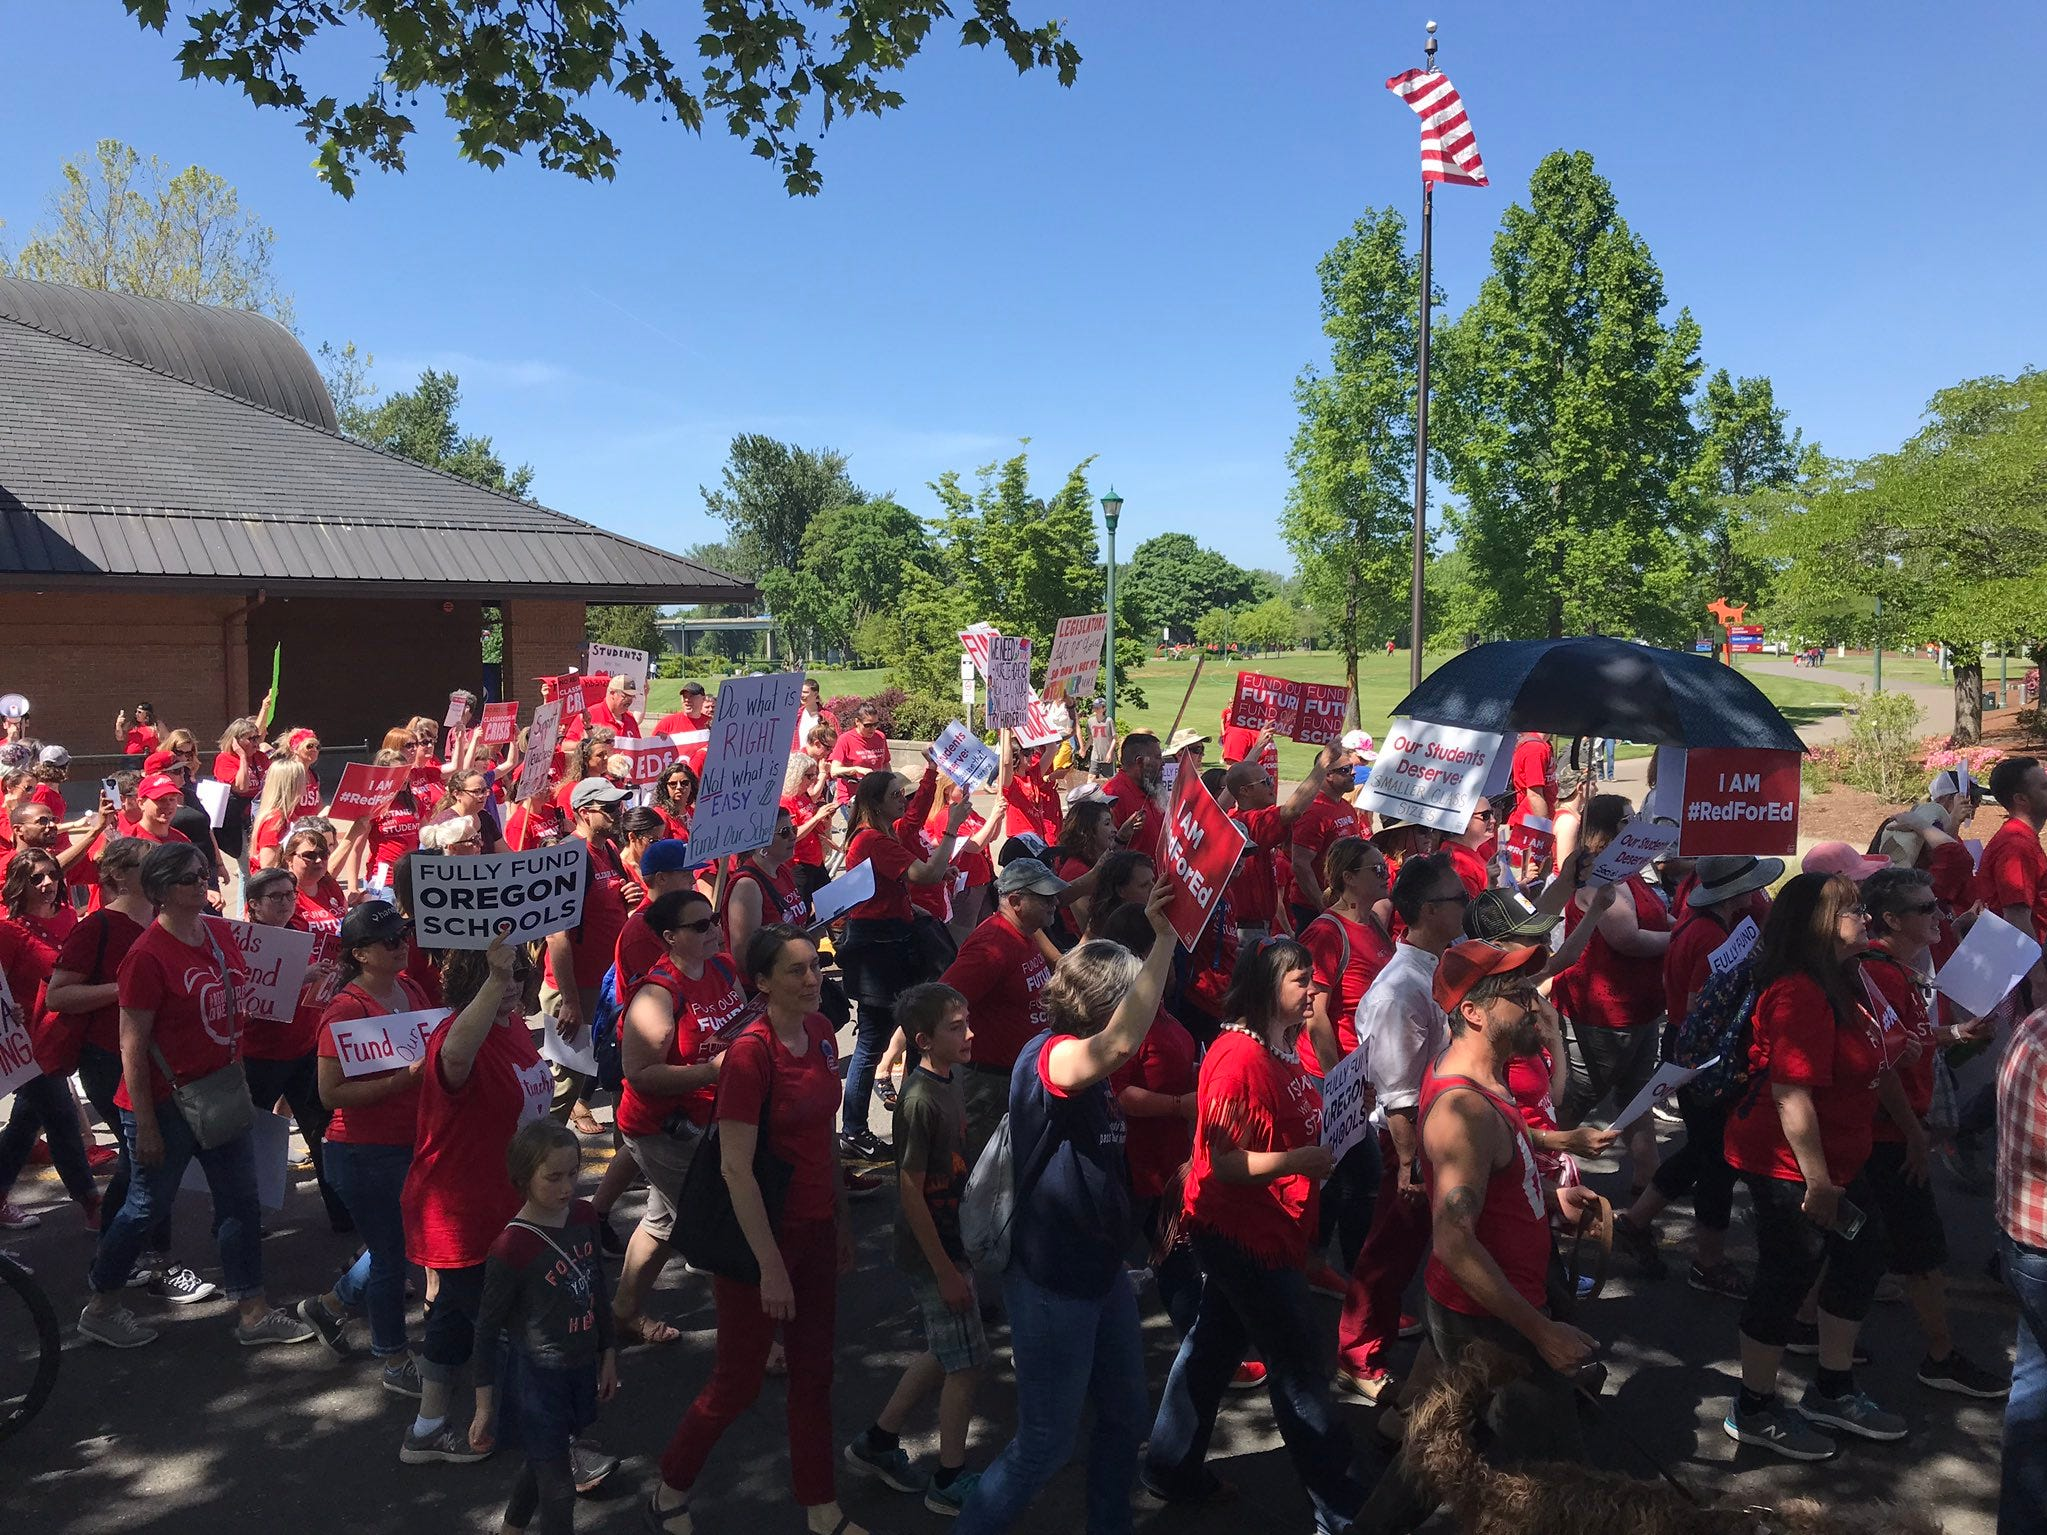 People marched from Riverfront Park to the Capitol for an education funding rally Wednesday, April 8, 2019.